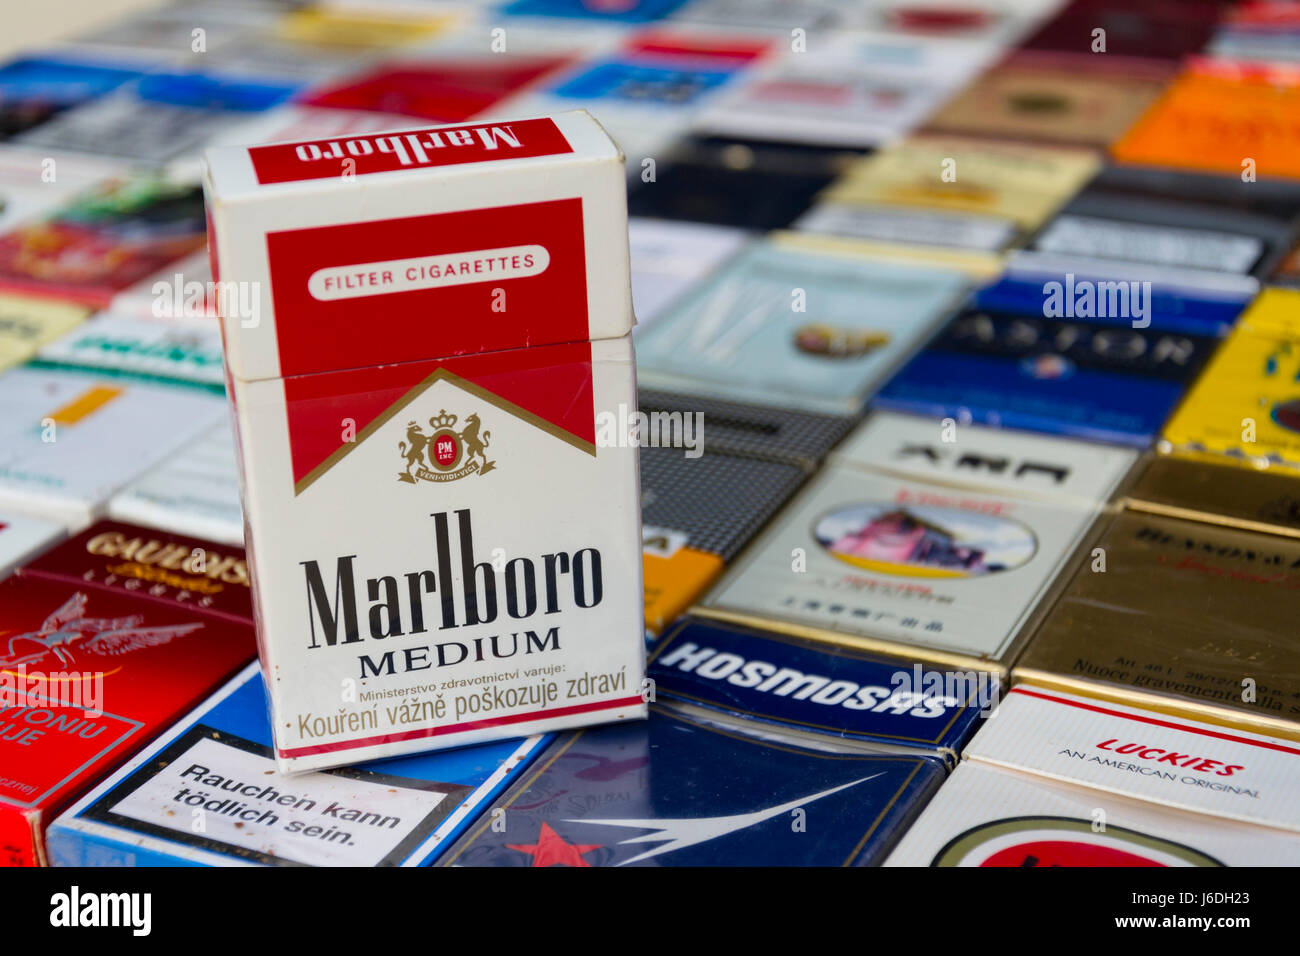 Buy import cigarettes